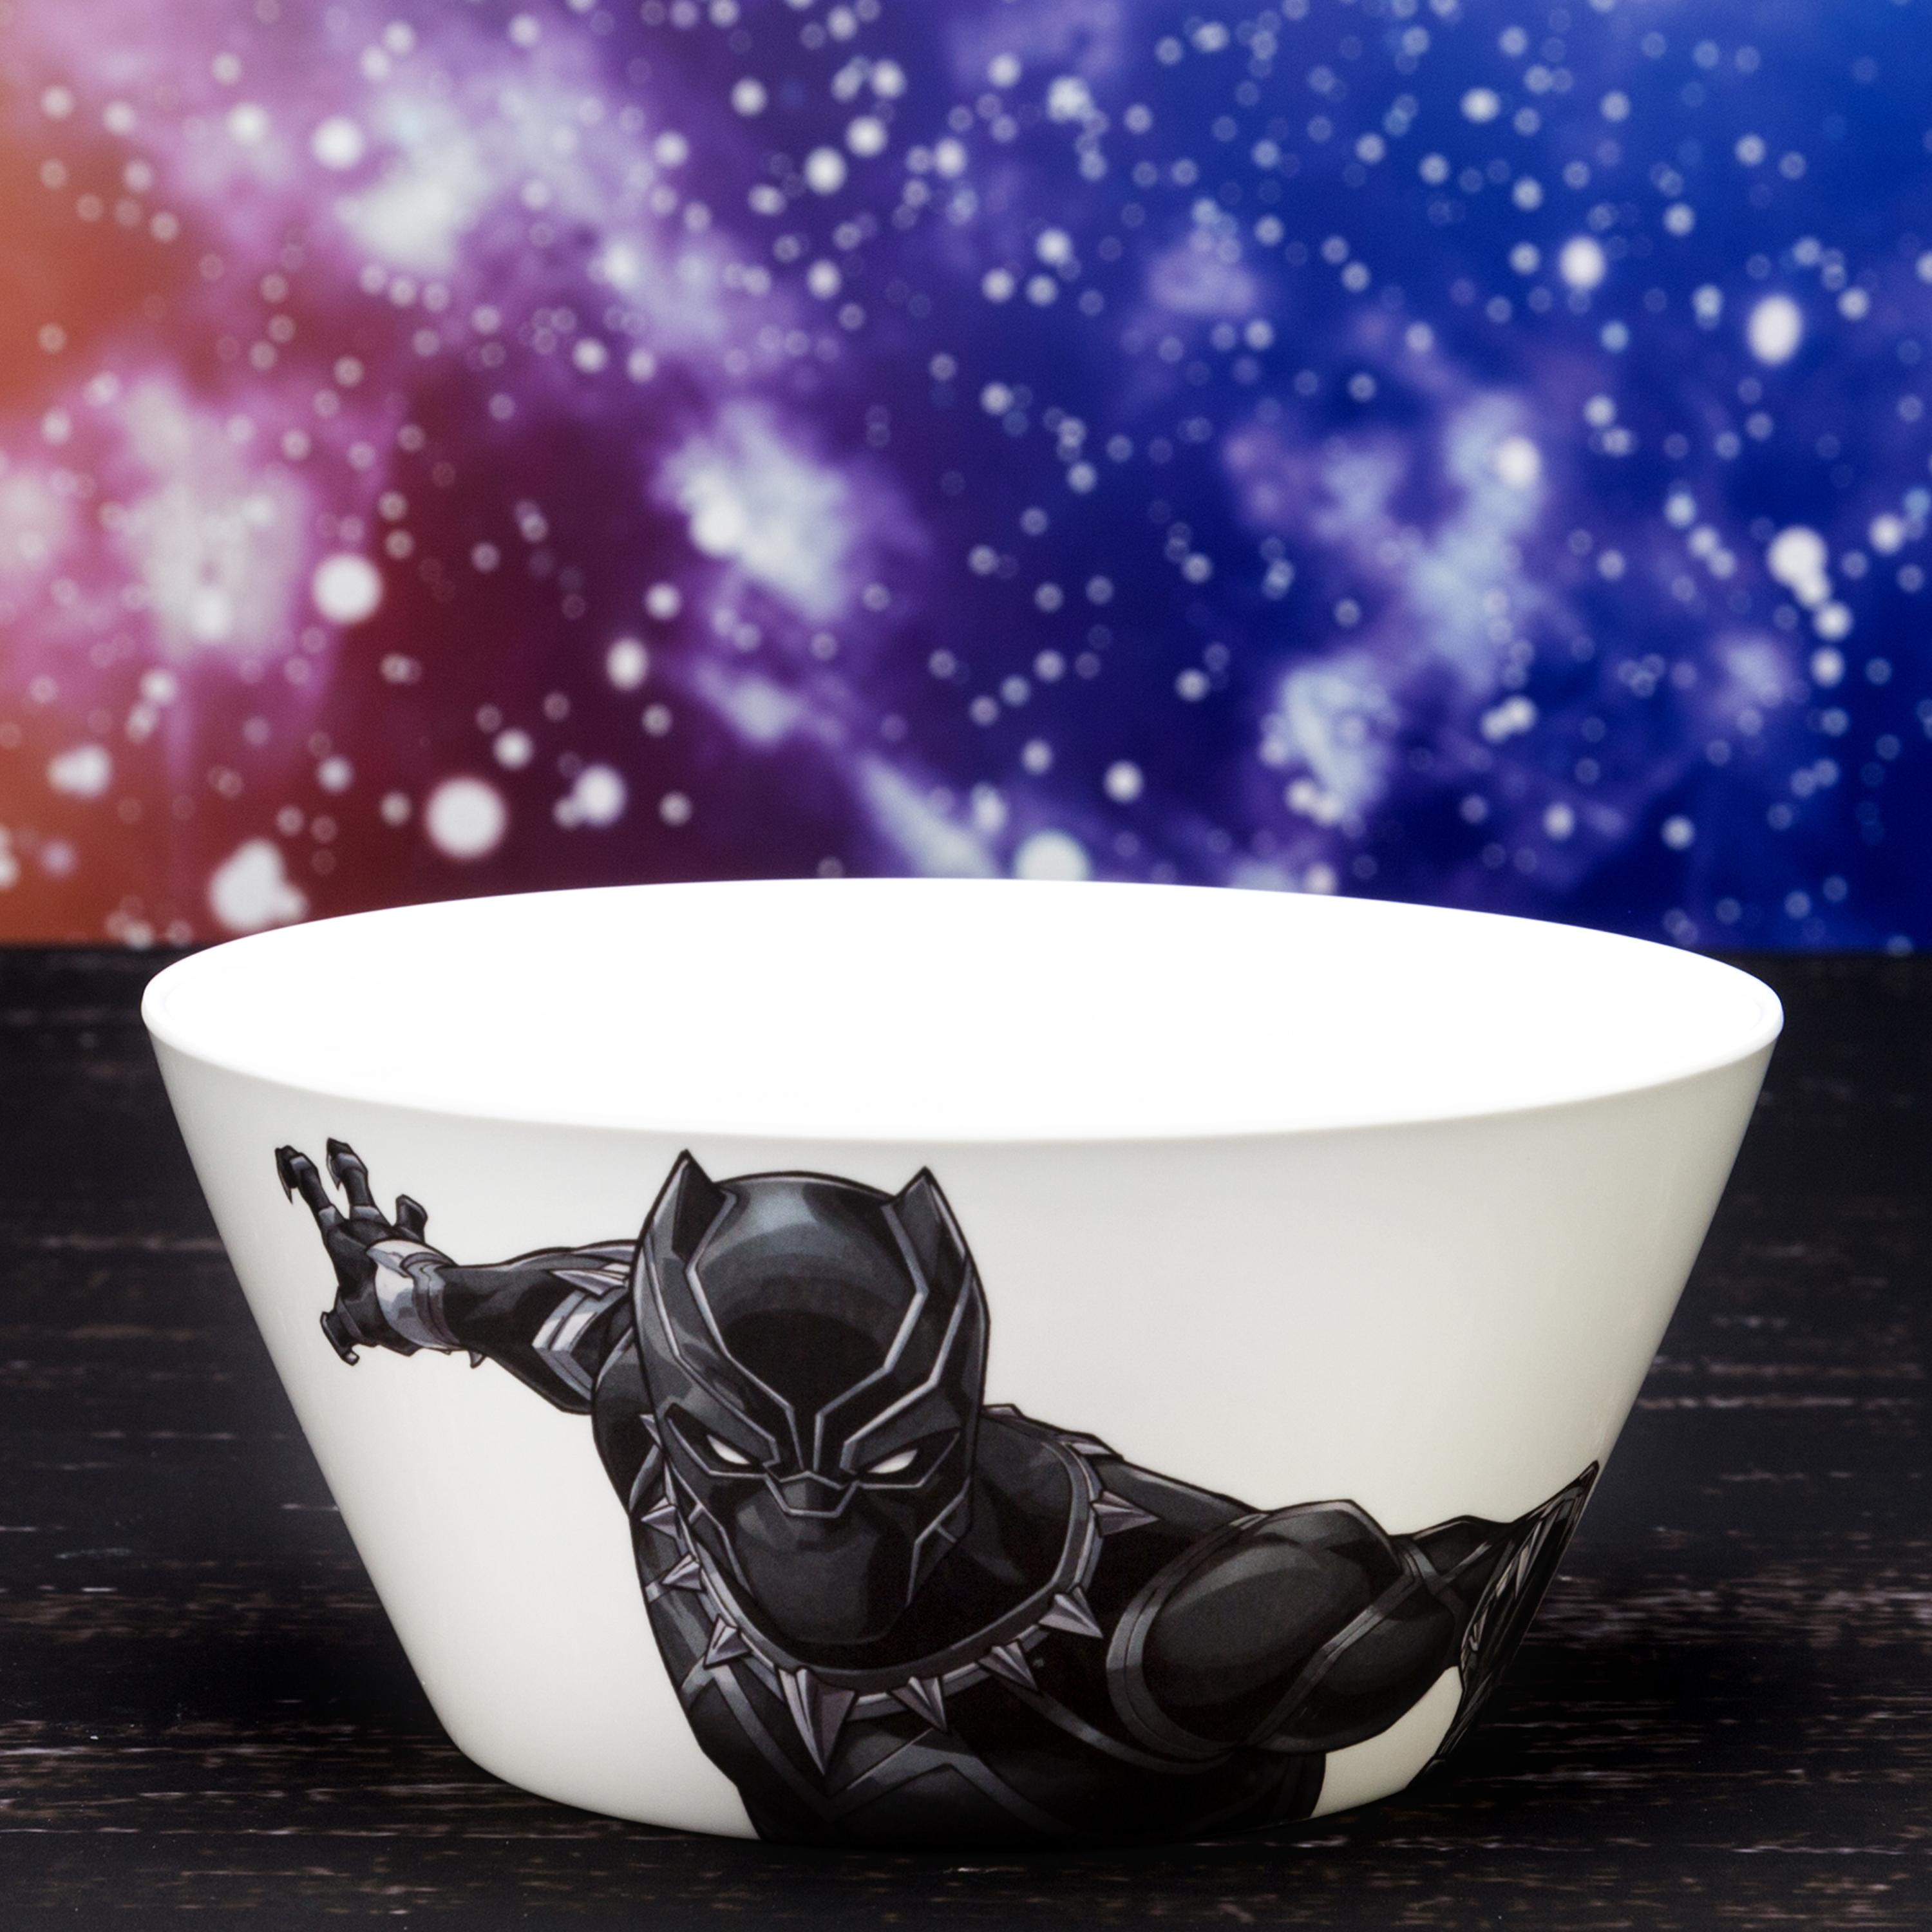 Marvel Comics Dinnerware Set, Black Panther & The Avengers, 2-piece set slideshow image 6